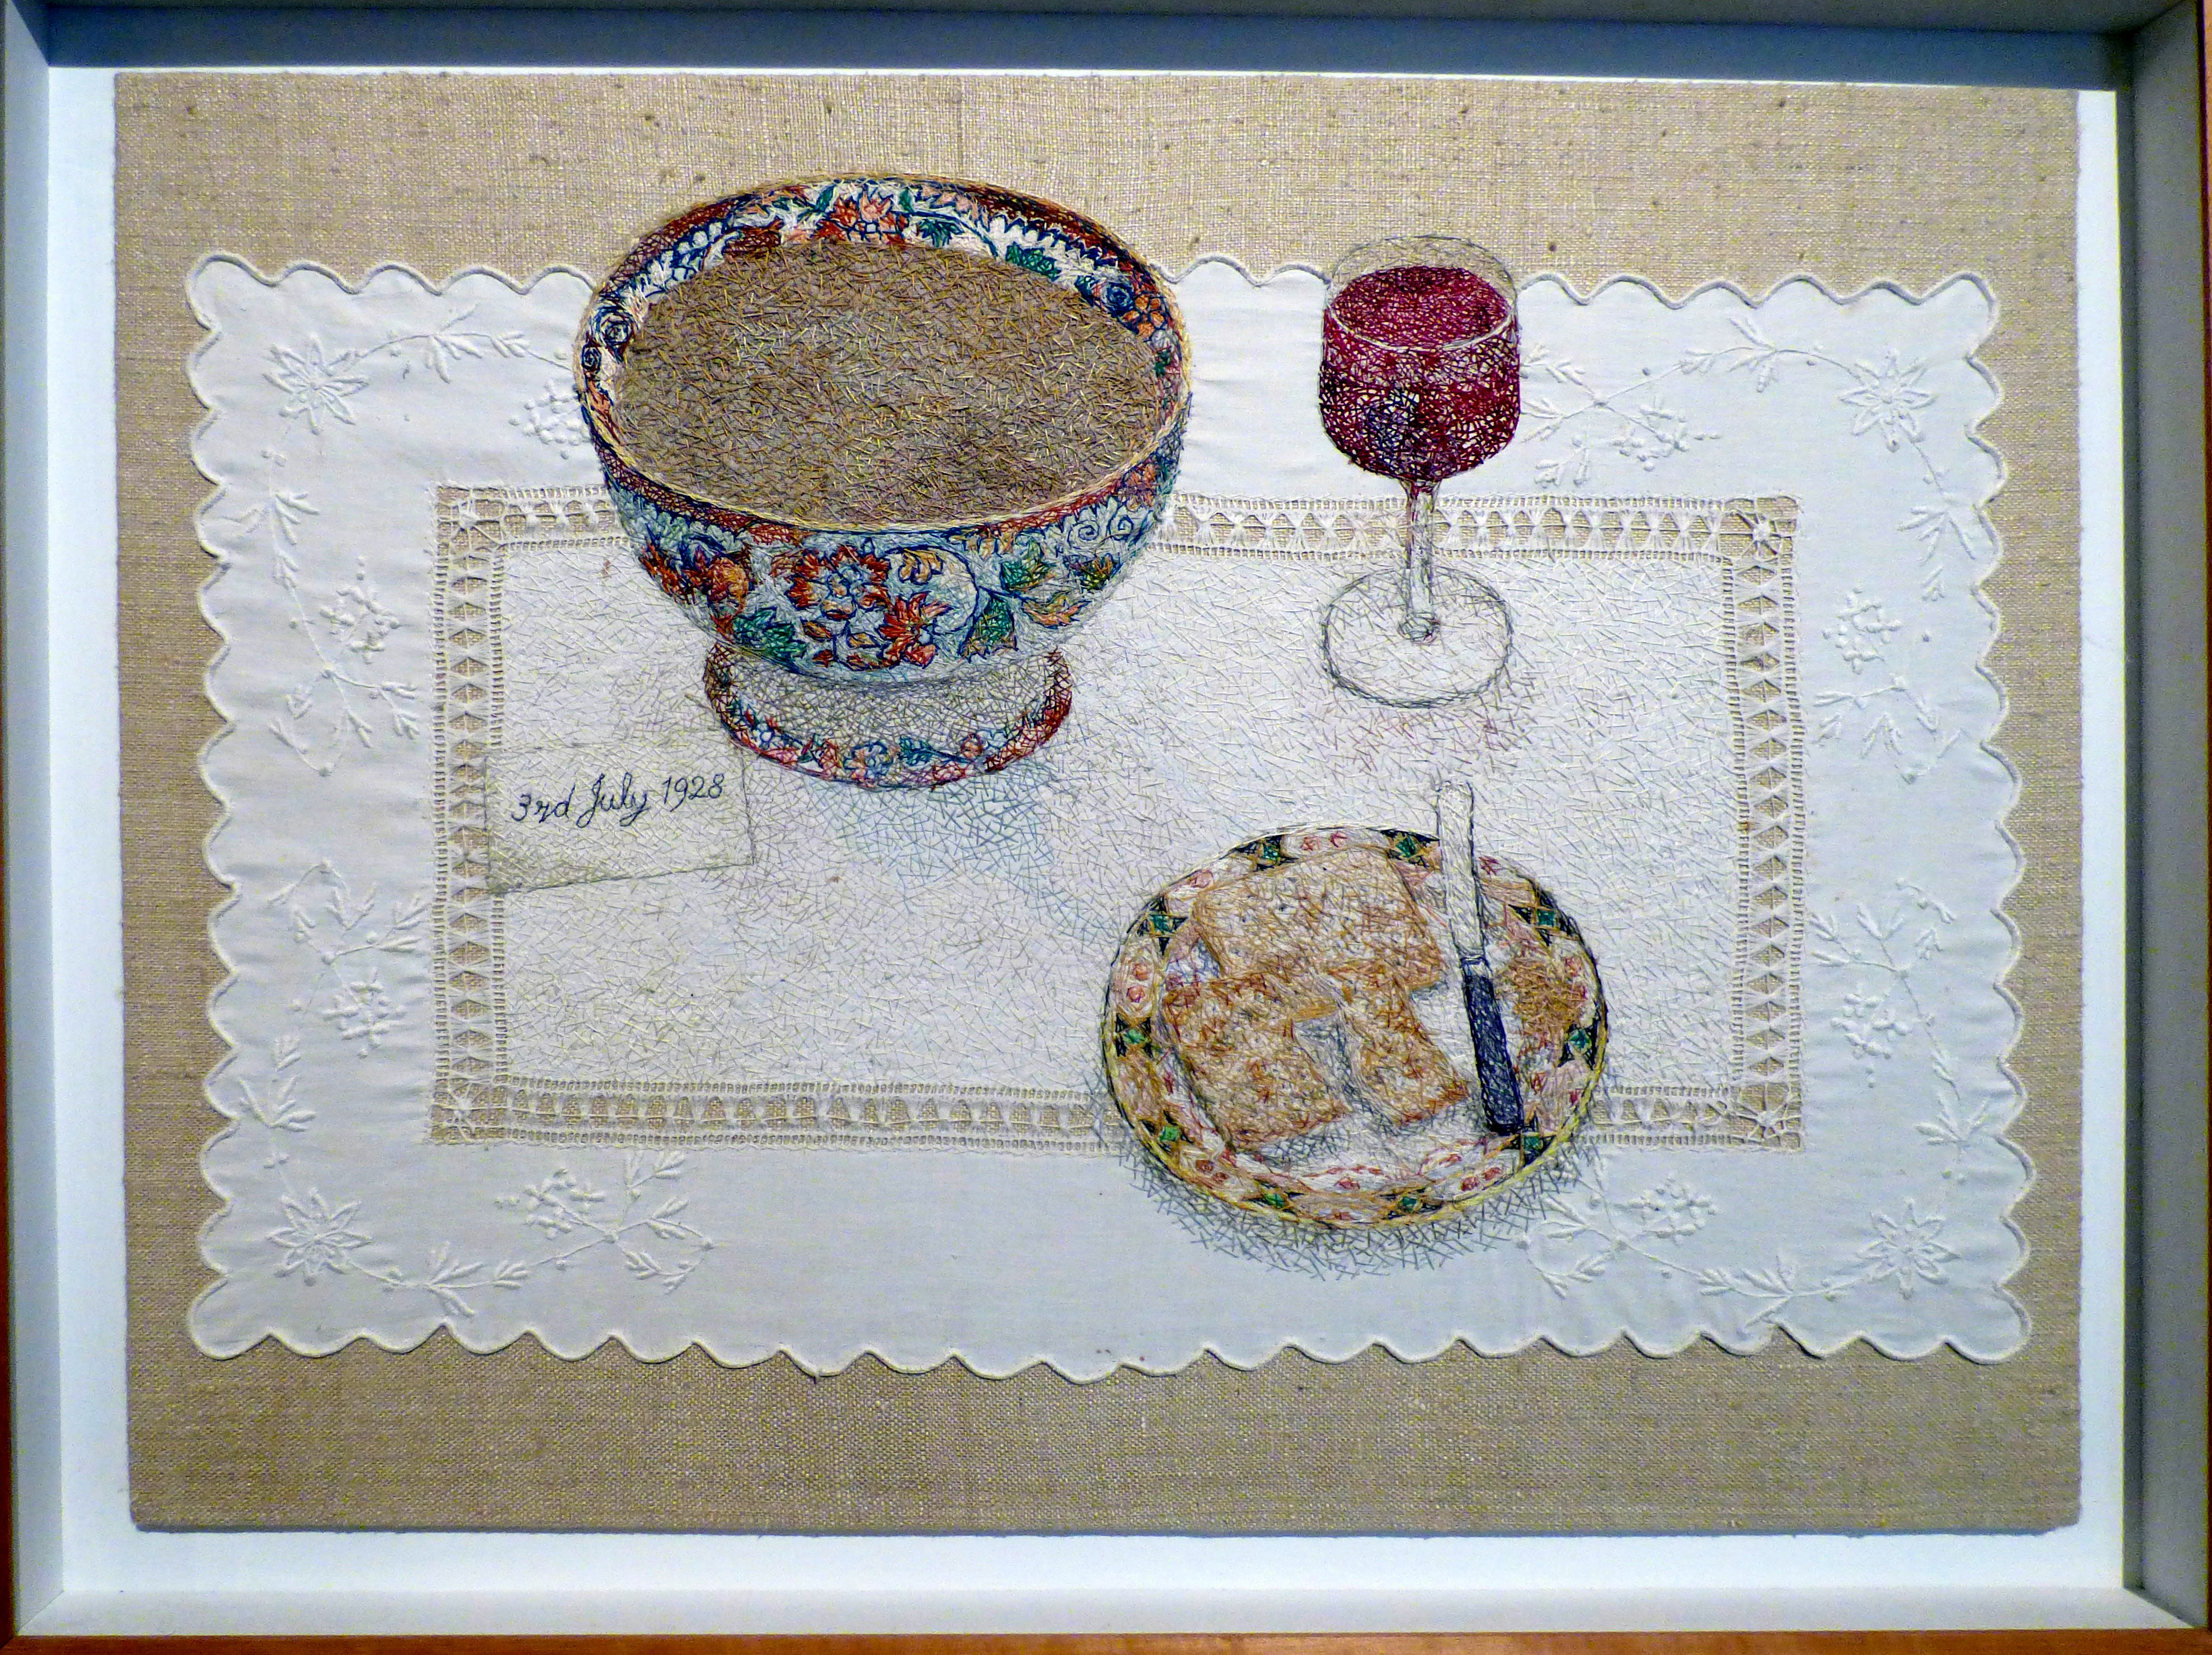 A CUMBRIAN BIRTHDAY by Audrey Walker, stitched textile, 1997/8